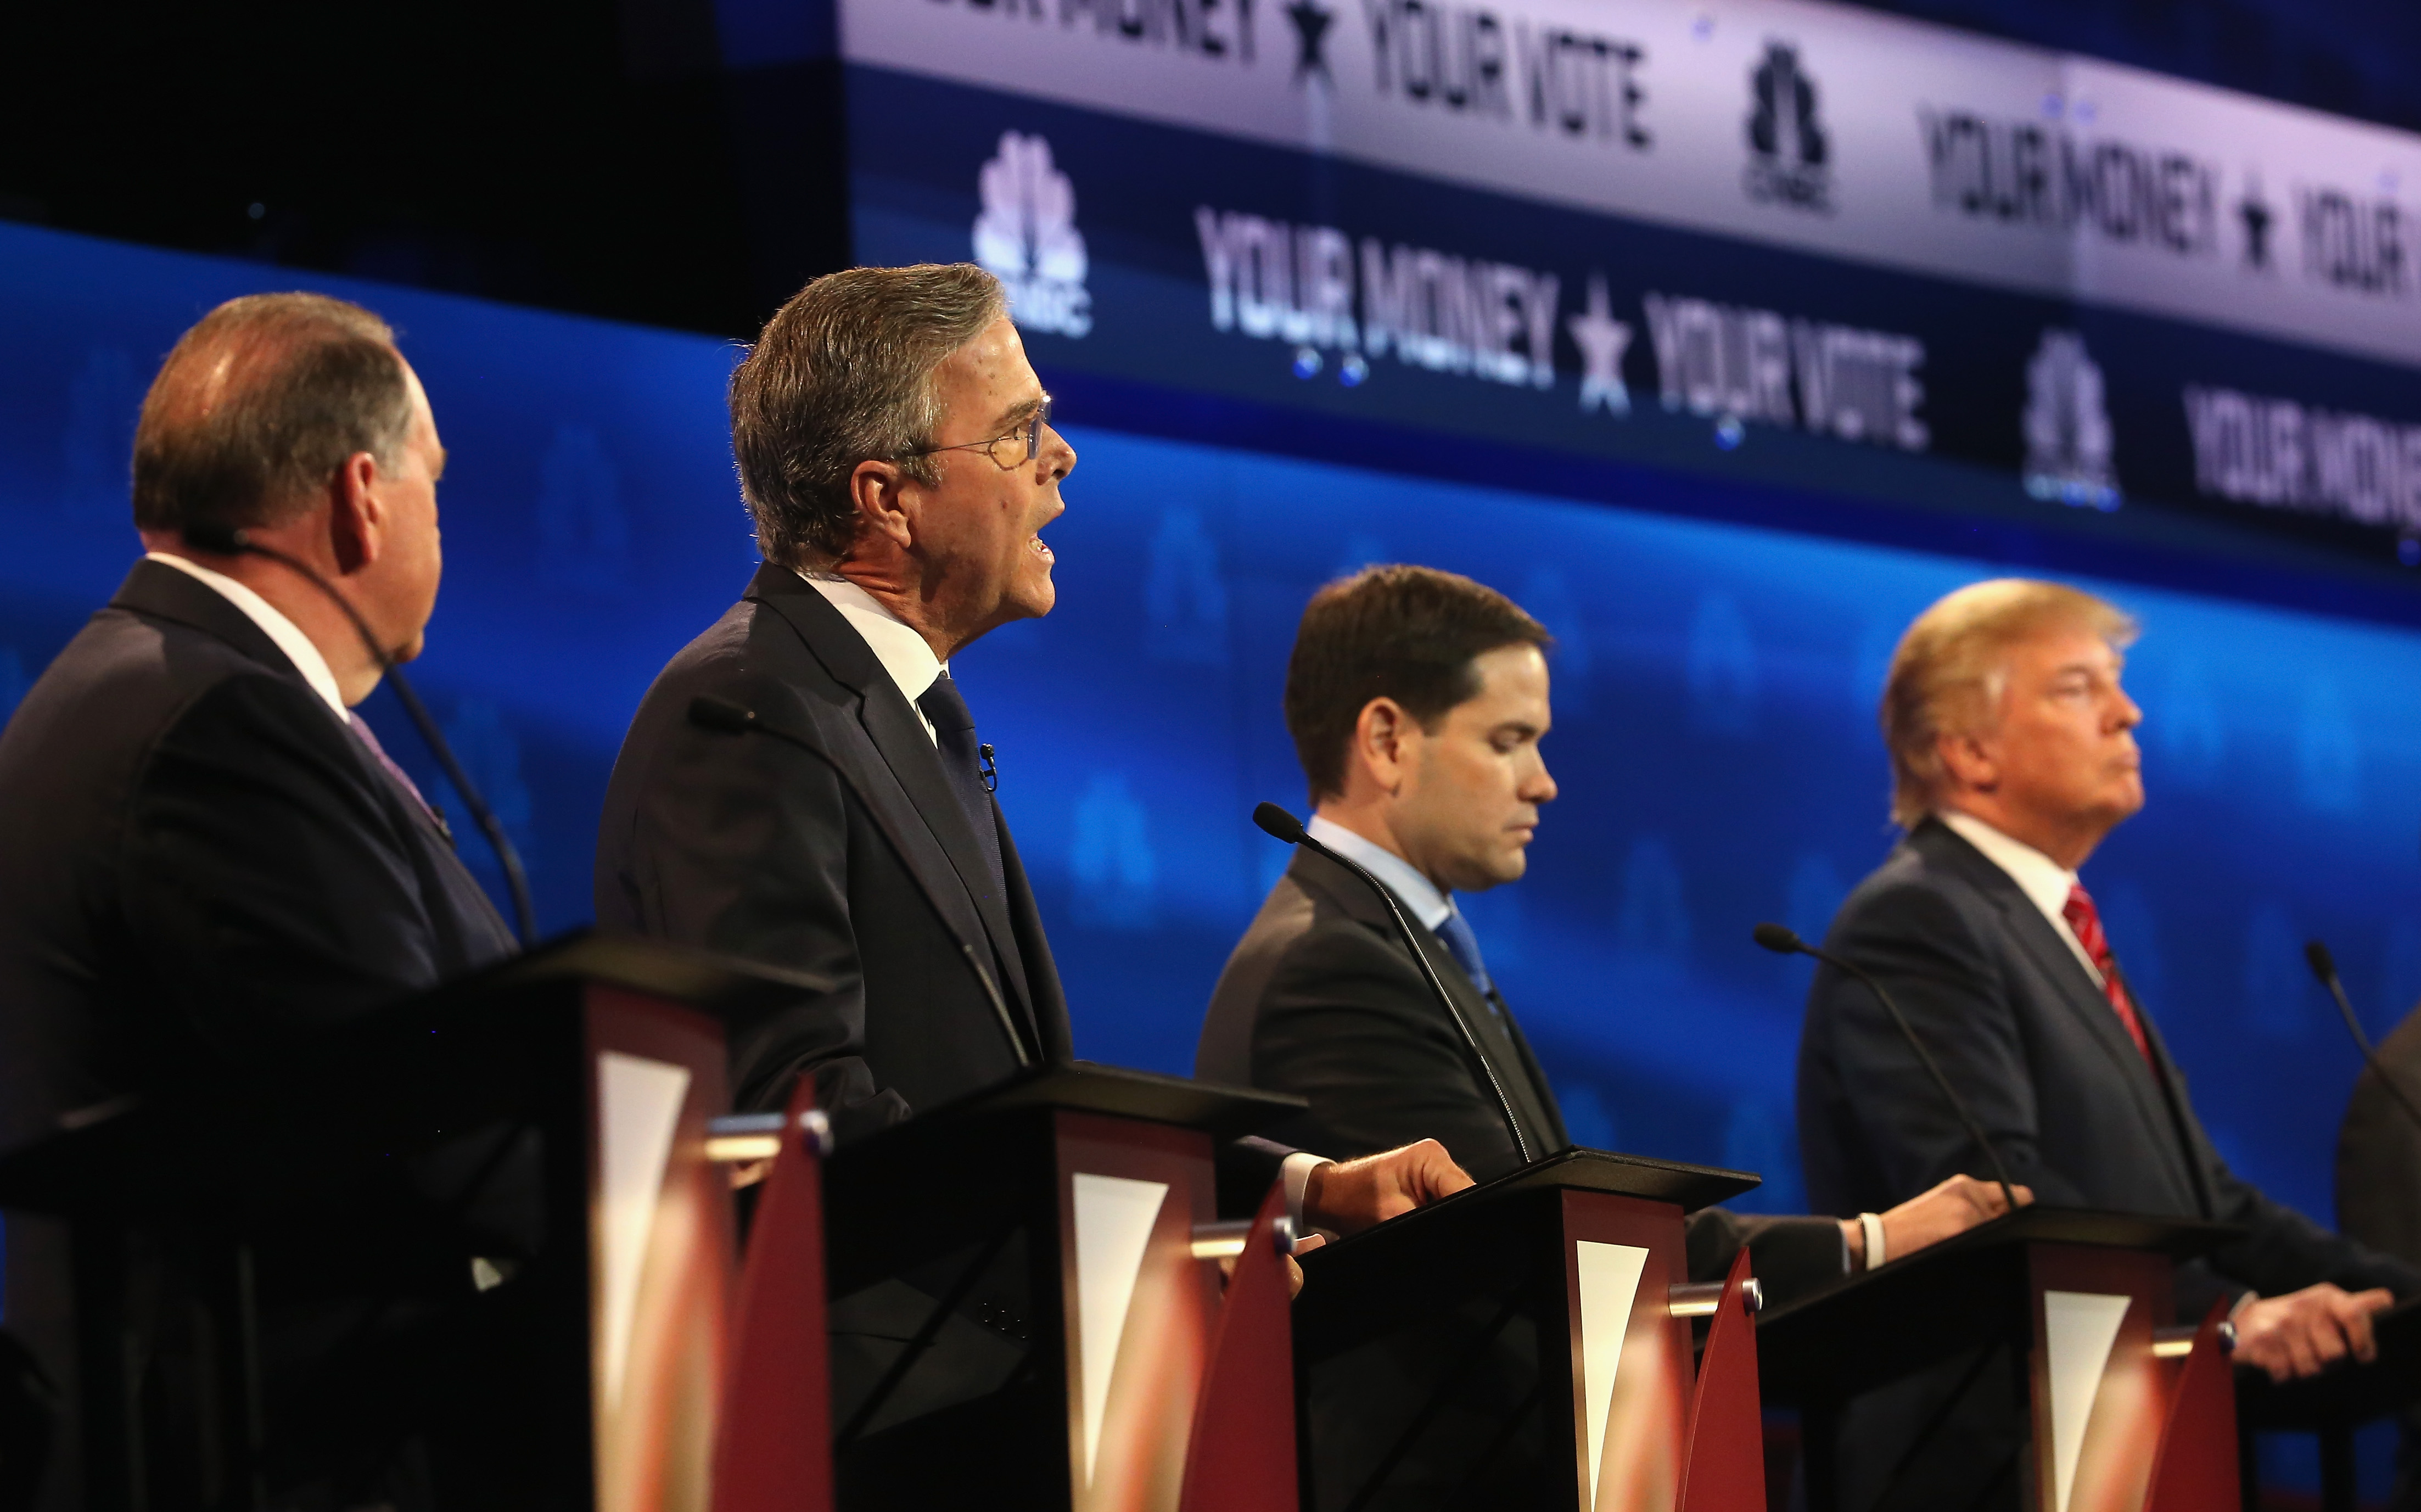 Presidential candidate Jeb Bush (2nd L) speaks while Sen. Marco Rubio (R-FL),  Donald Trump, and Mike Huckabee (L) look on during the CNBC Republican Presidential Debate at University of Colorados Coors Events Center October 28, 2015 in Boulder, Colorado.  Fourteen Republican presidential candidates are participating in the third set of Republican presidential debates.  (Photo by Justin Sullivan/Getty Images)